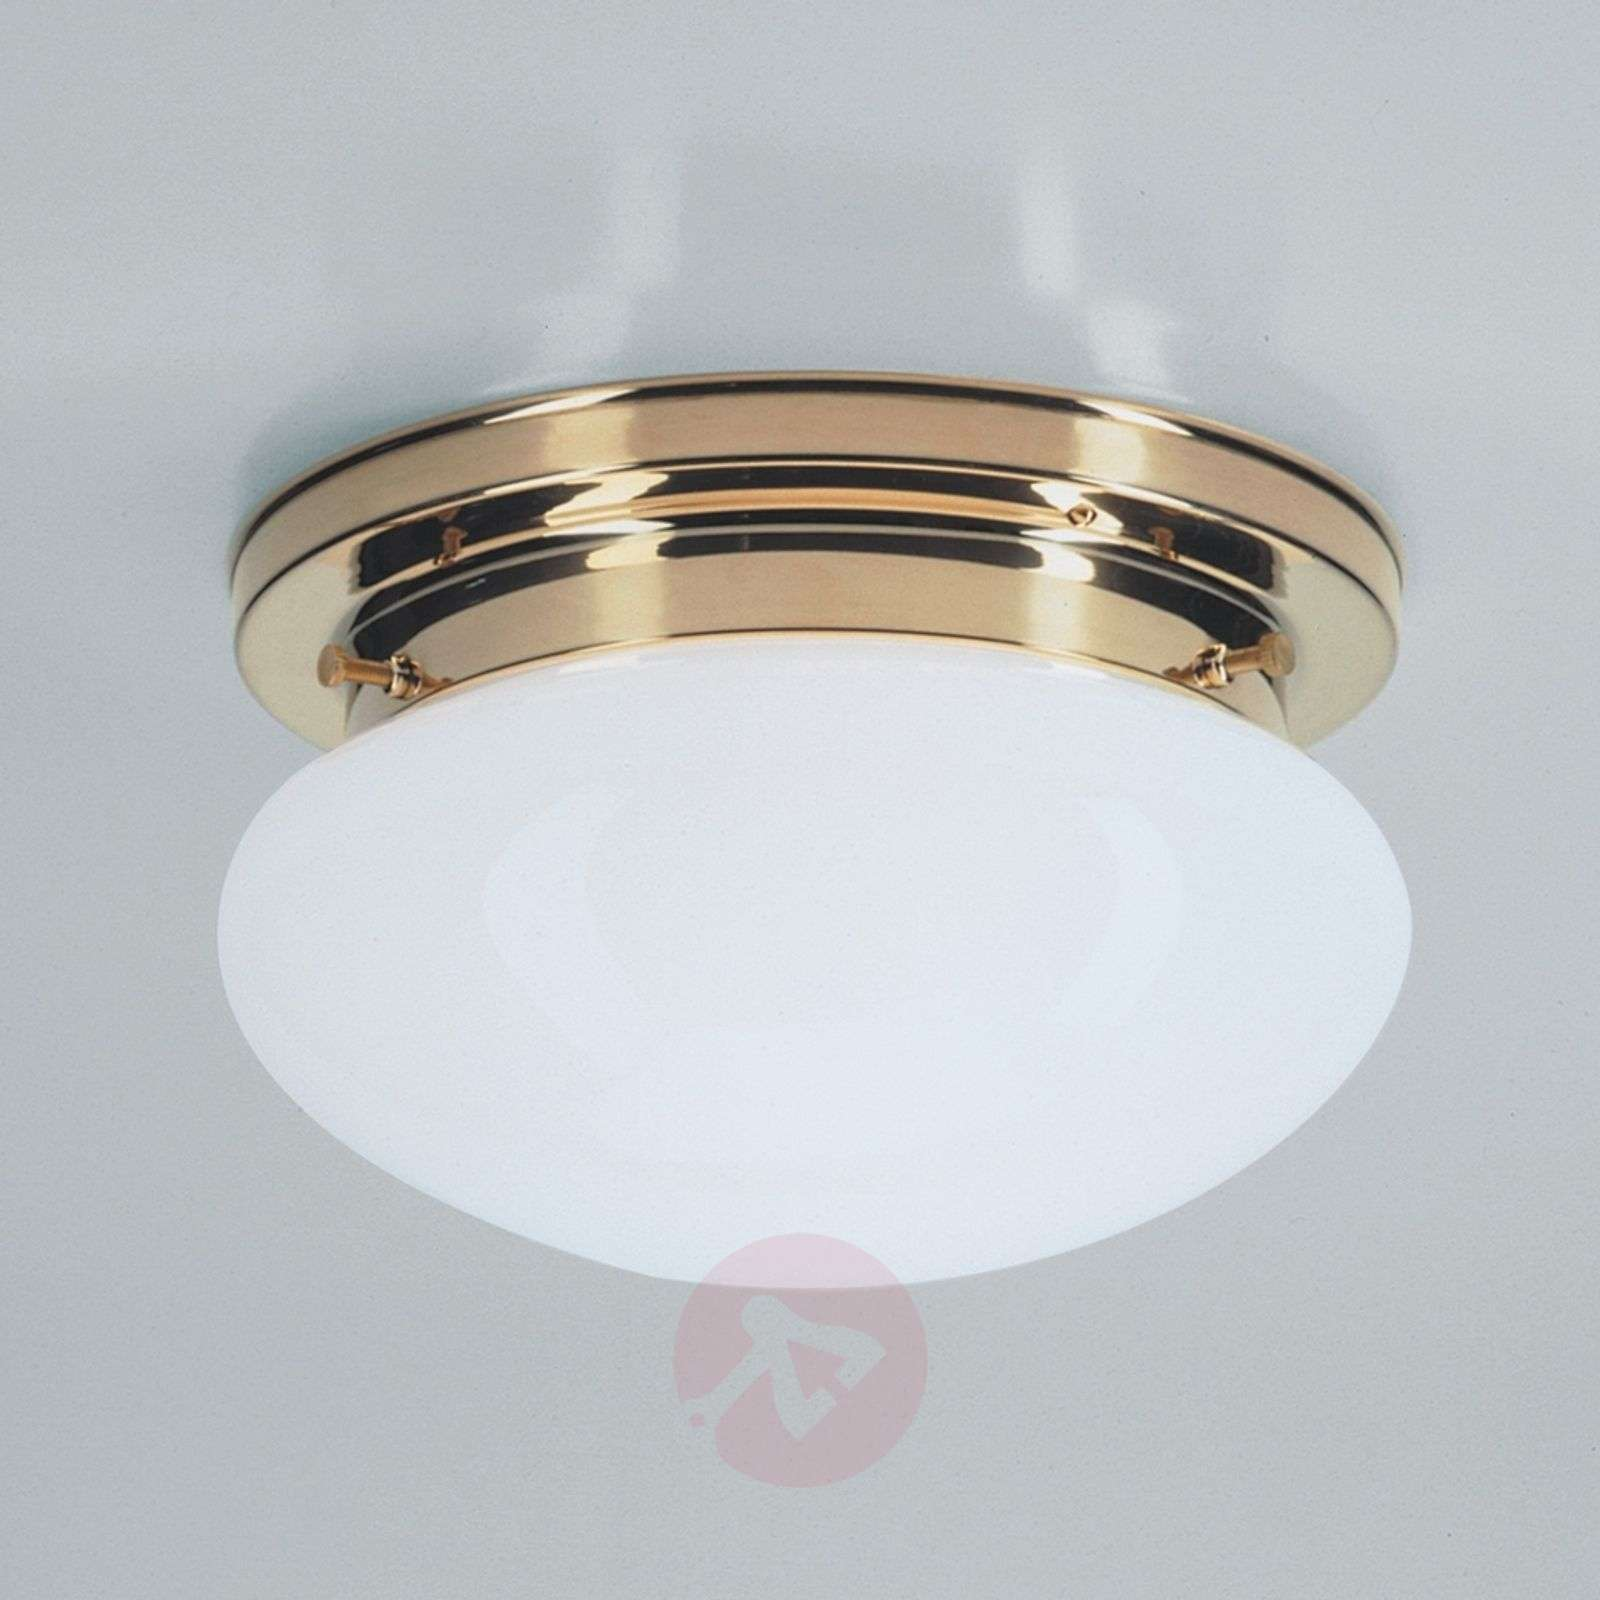 HARRY ceiling light with polished brass_1542026_1